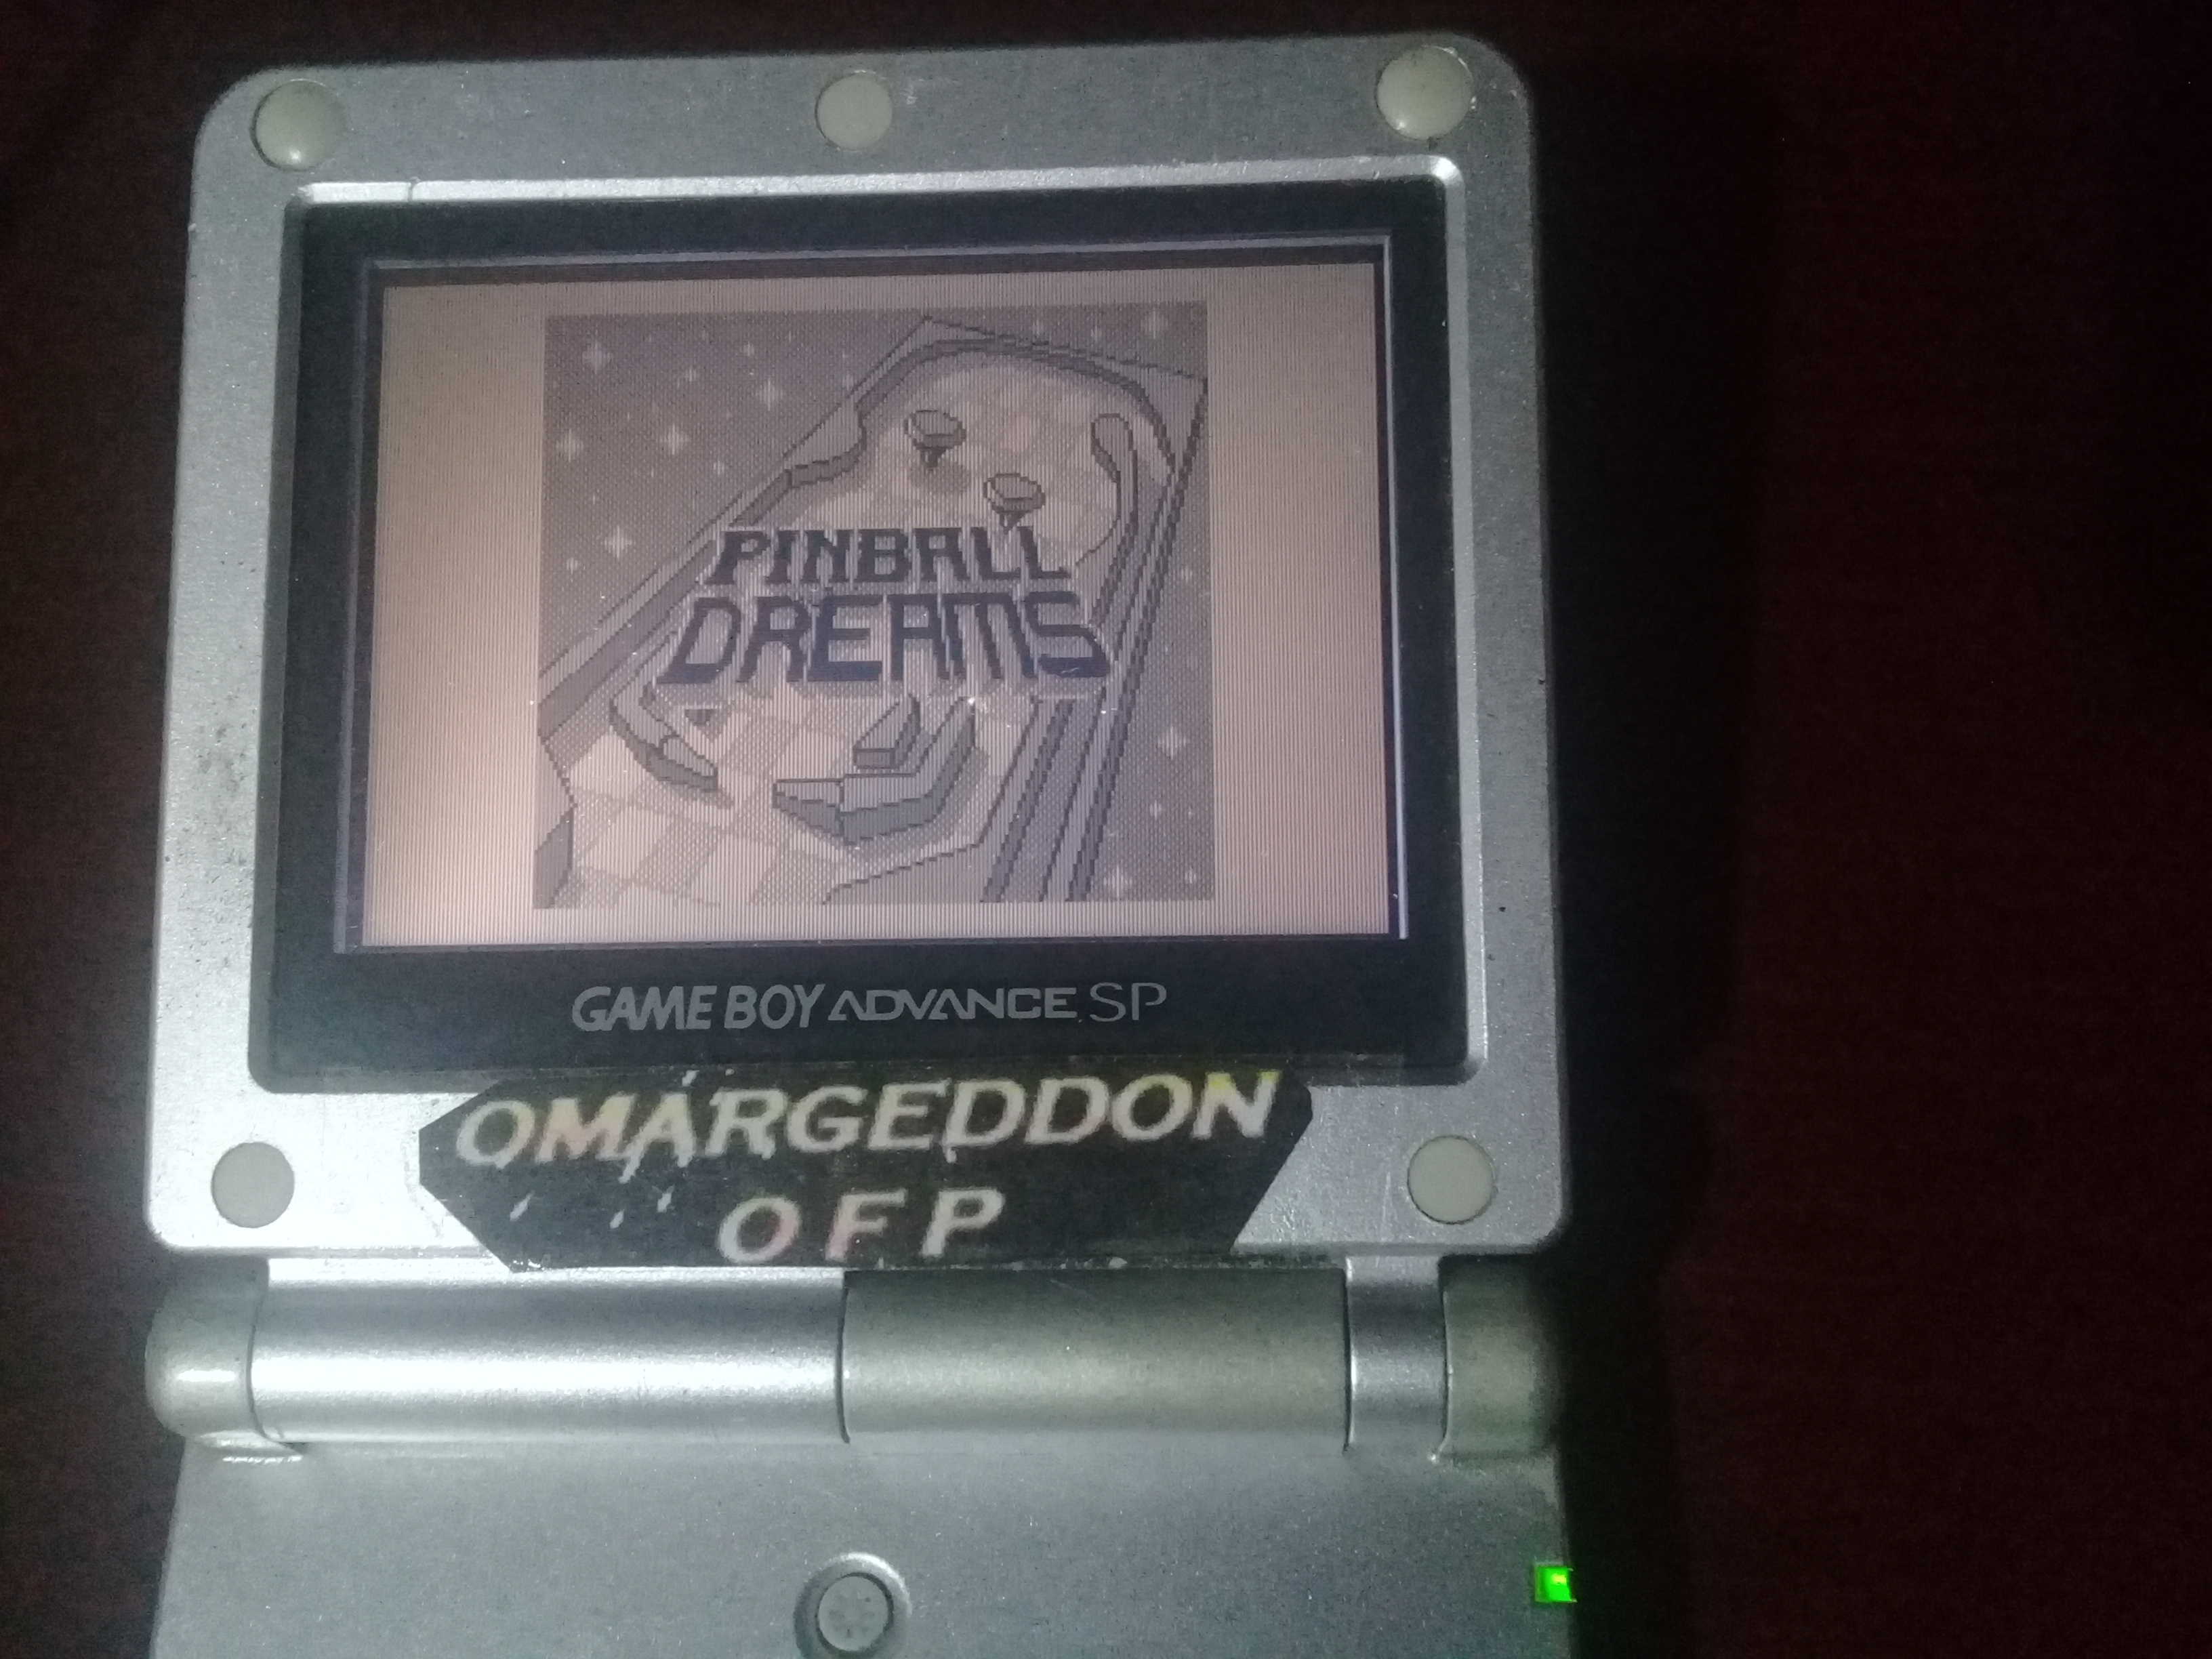 omargeddon: Pinball Dreams: Ignition (Game Boy) 40,983,070 points on 2019-01-12 16:22:21